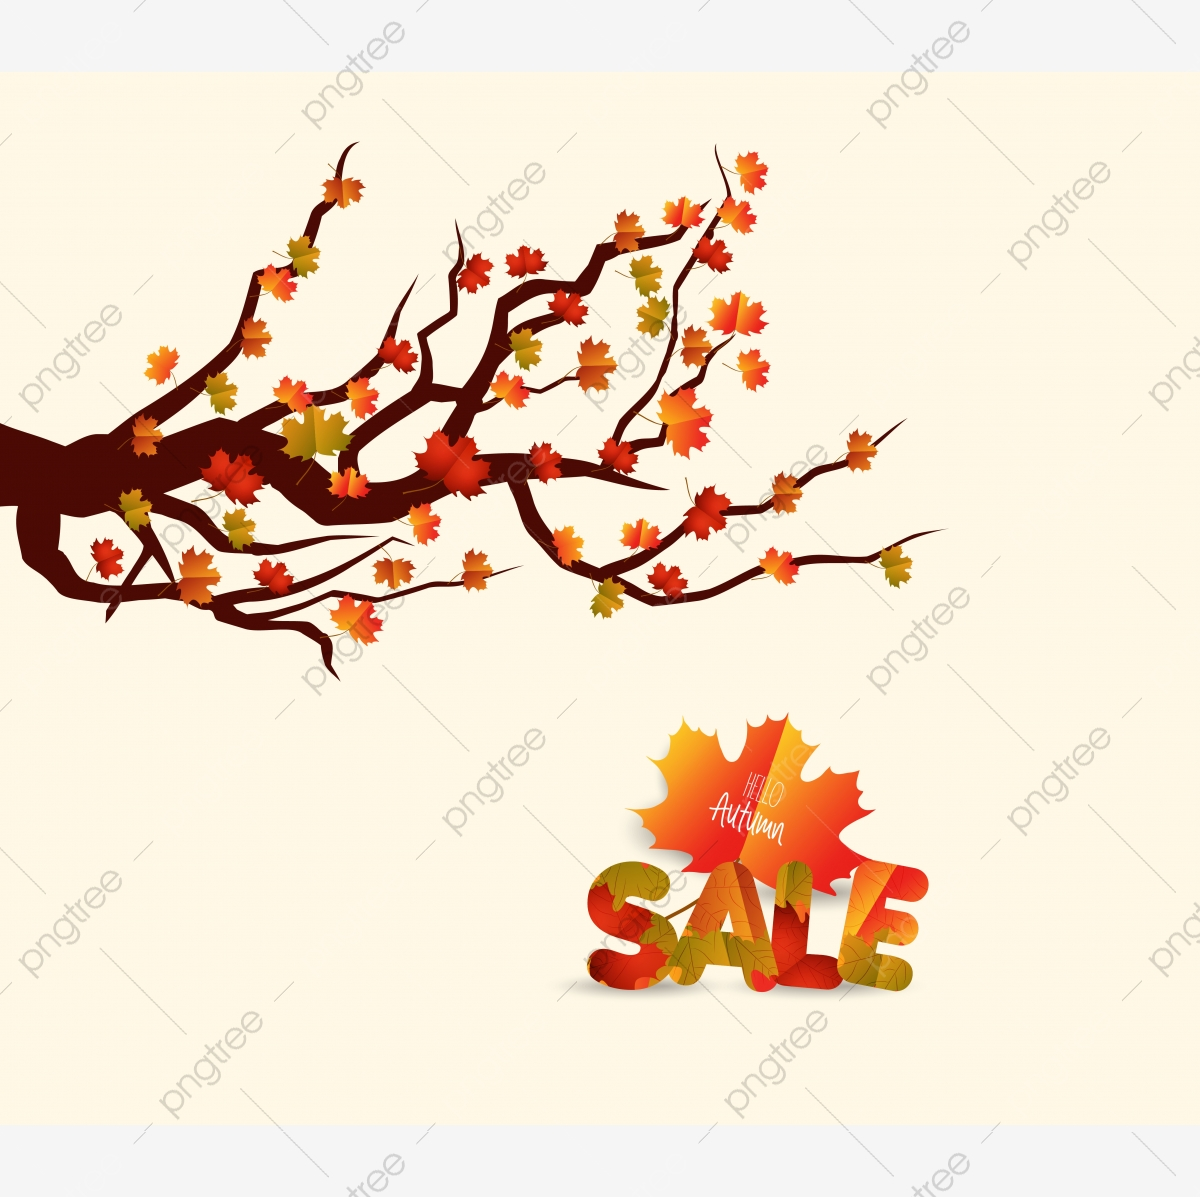 Autumn Tree Fall Leaves Background Autumn Background Beauty Png